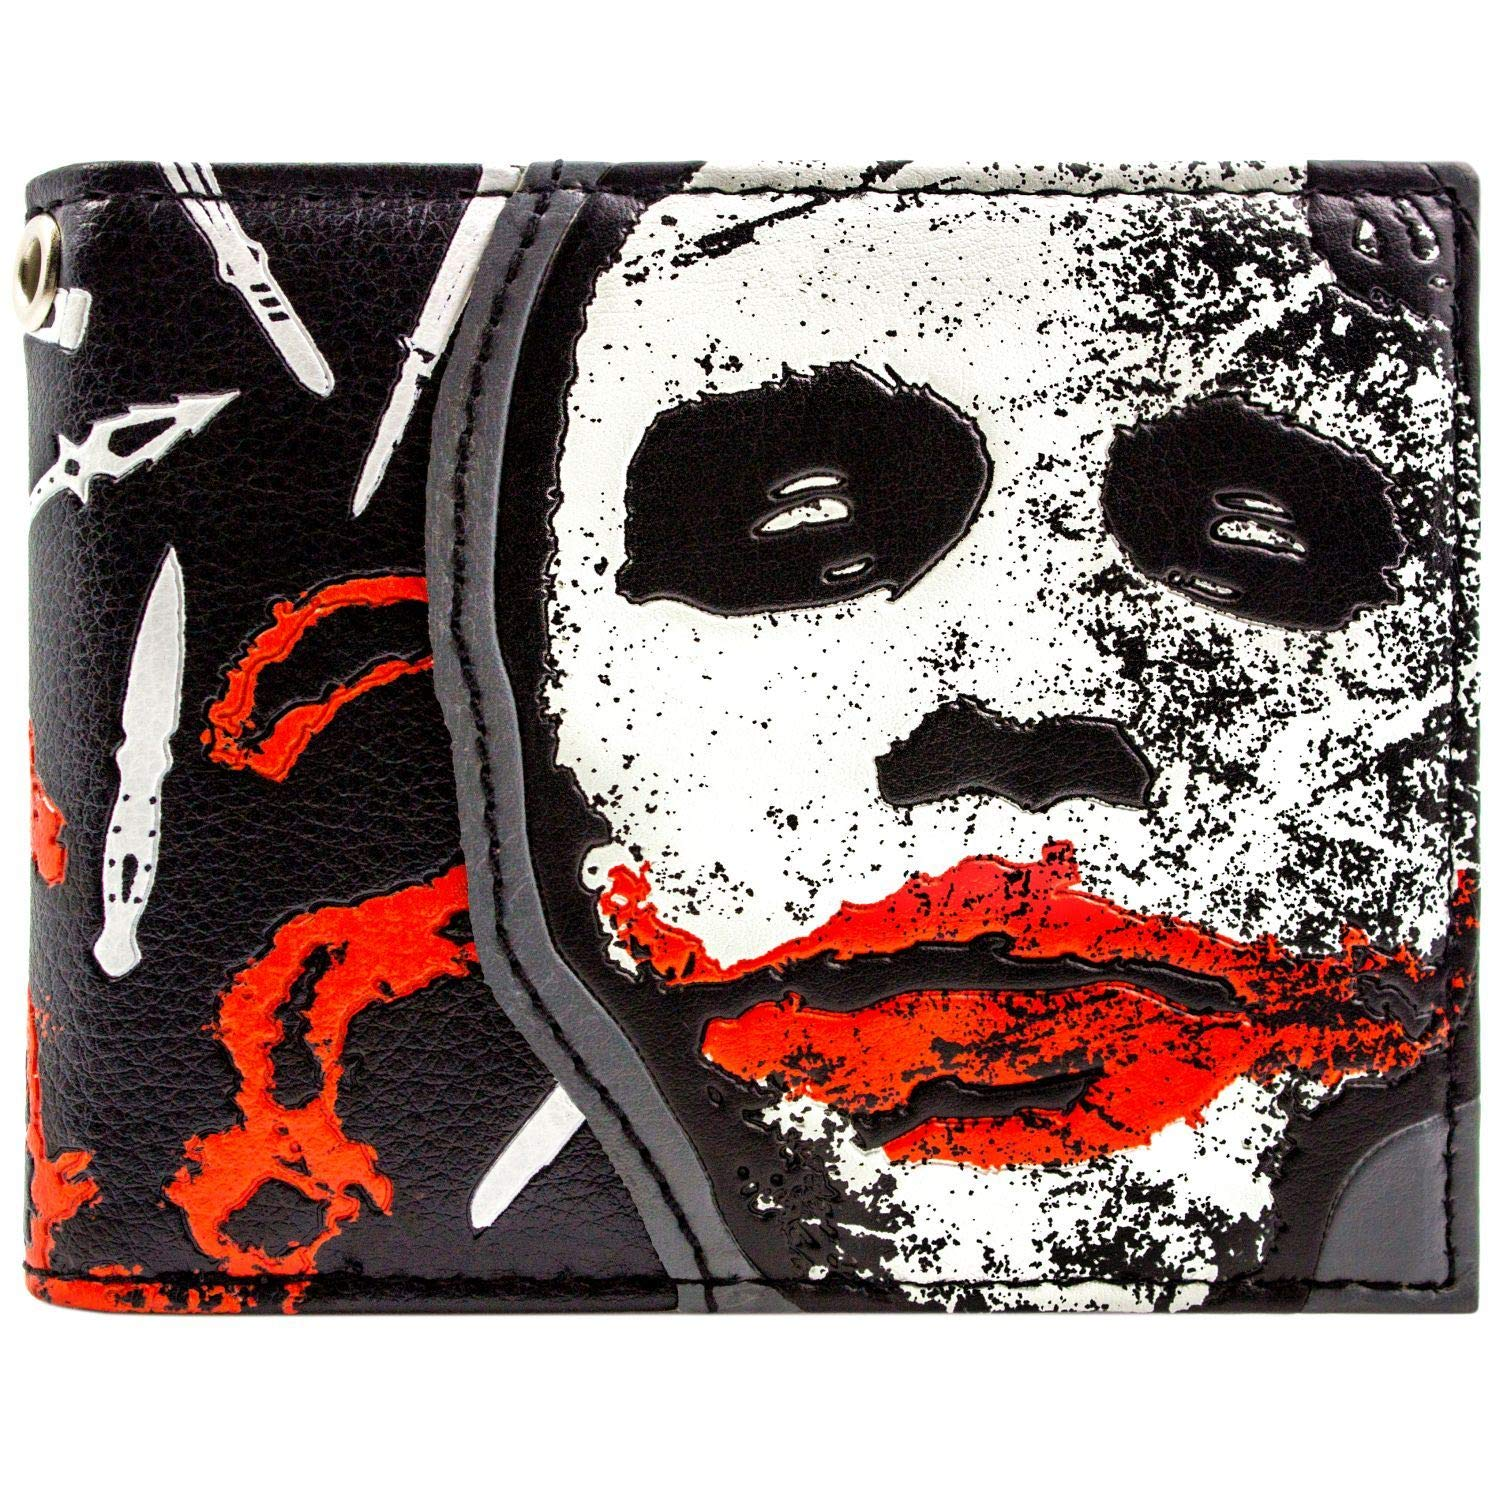 Cartera de DC Dark Knight Joker por qué Tan Serio Negro 28105